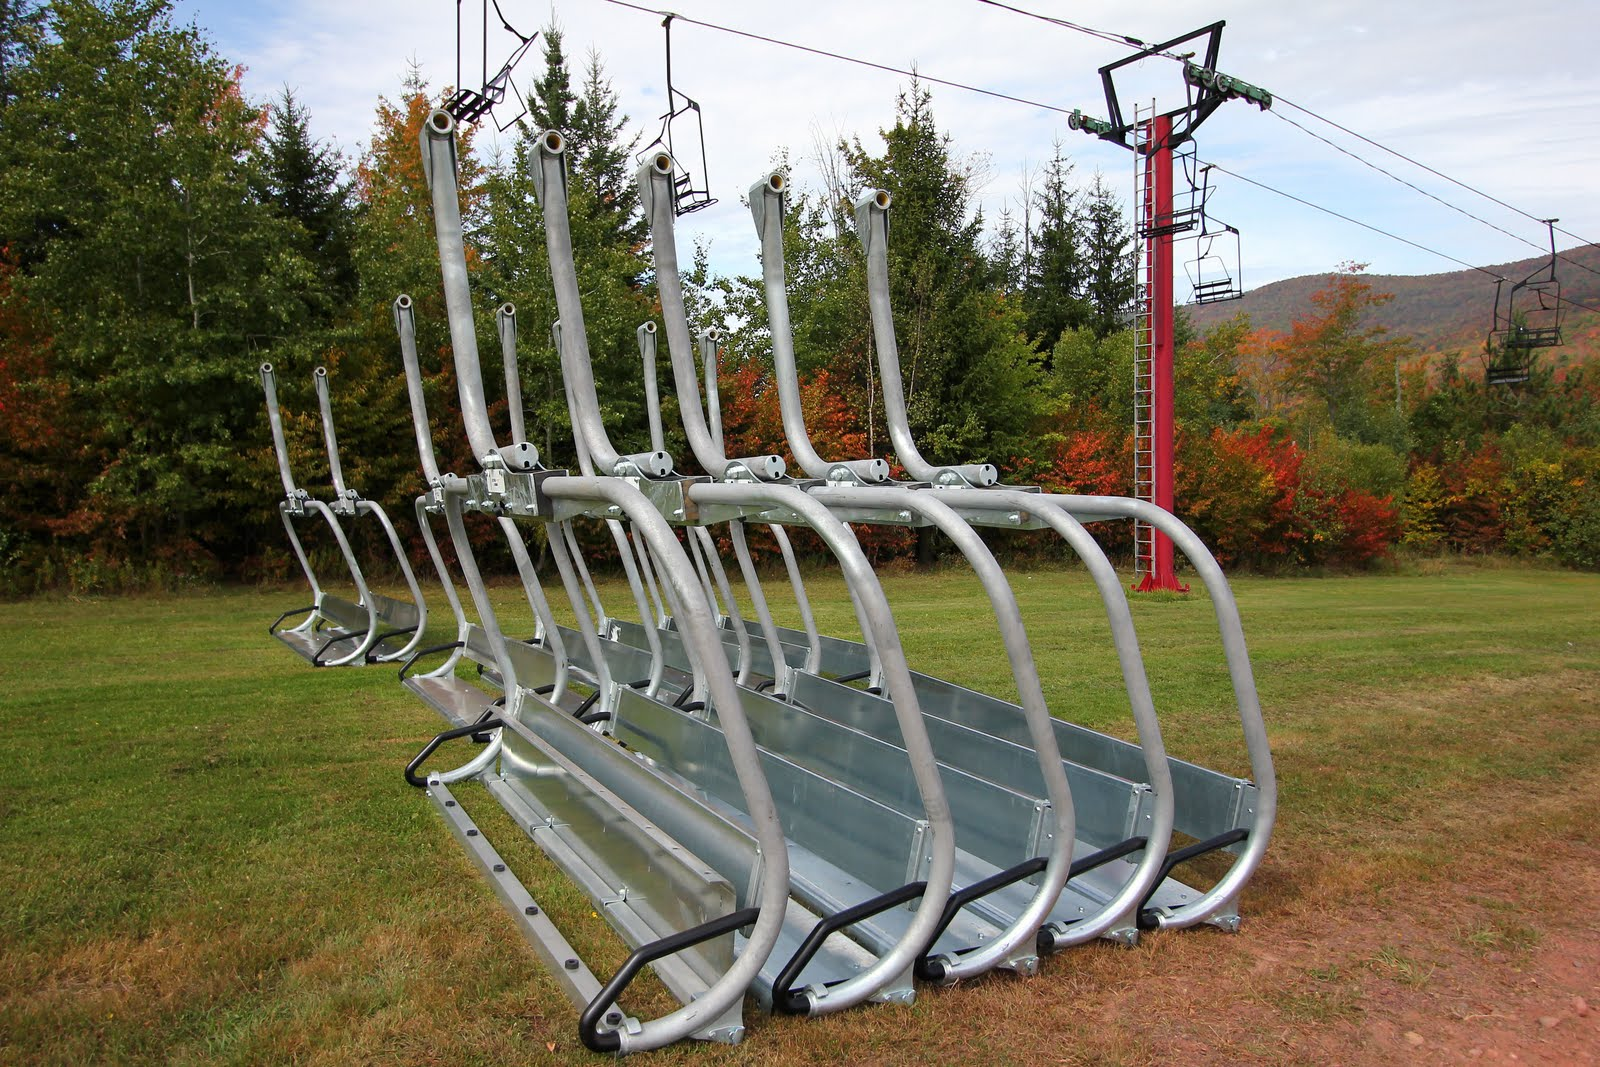 Ski Lift Chairs For Sale Ikea Bar Chair Covers Hunterblog Hunter Mountain 39s Blog September 2010